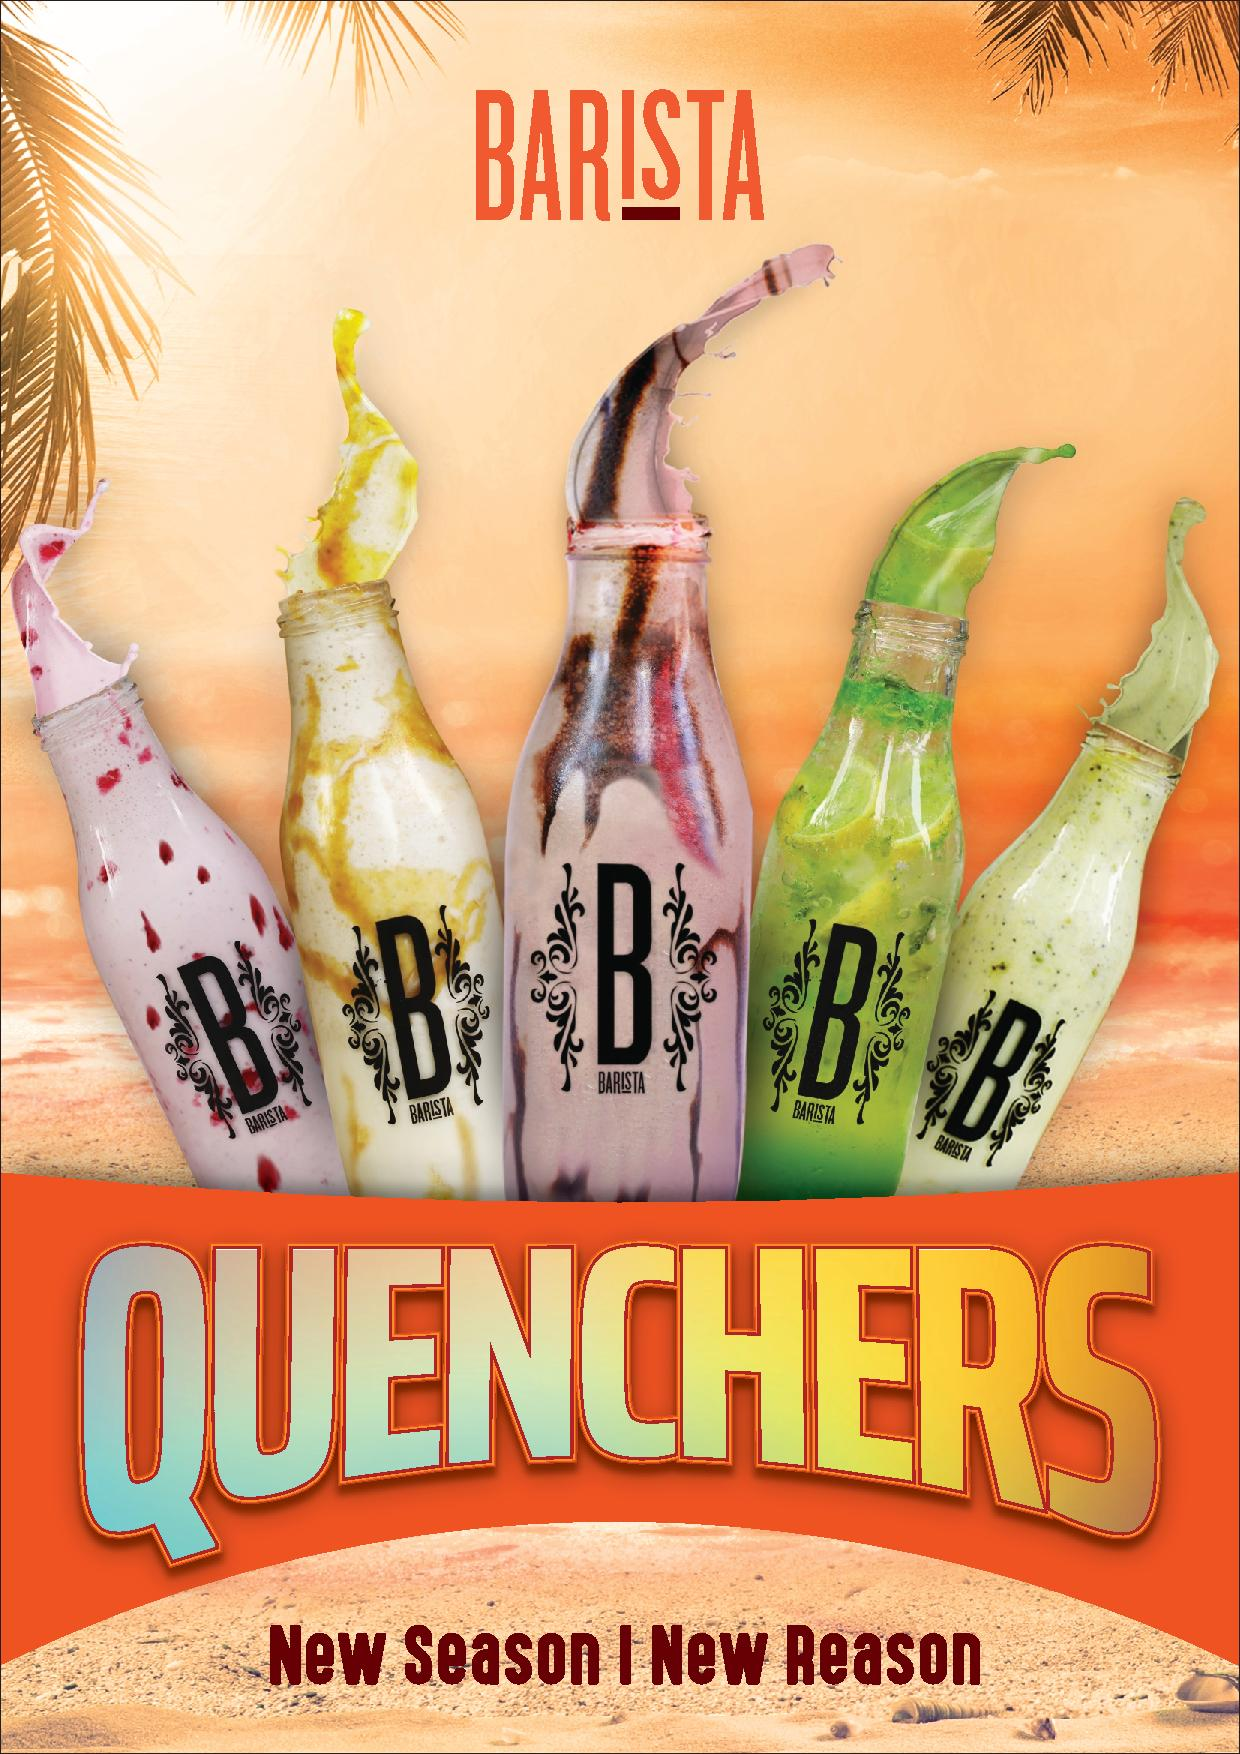 Exclusive Quenchers Now Available At Barista!